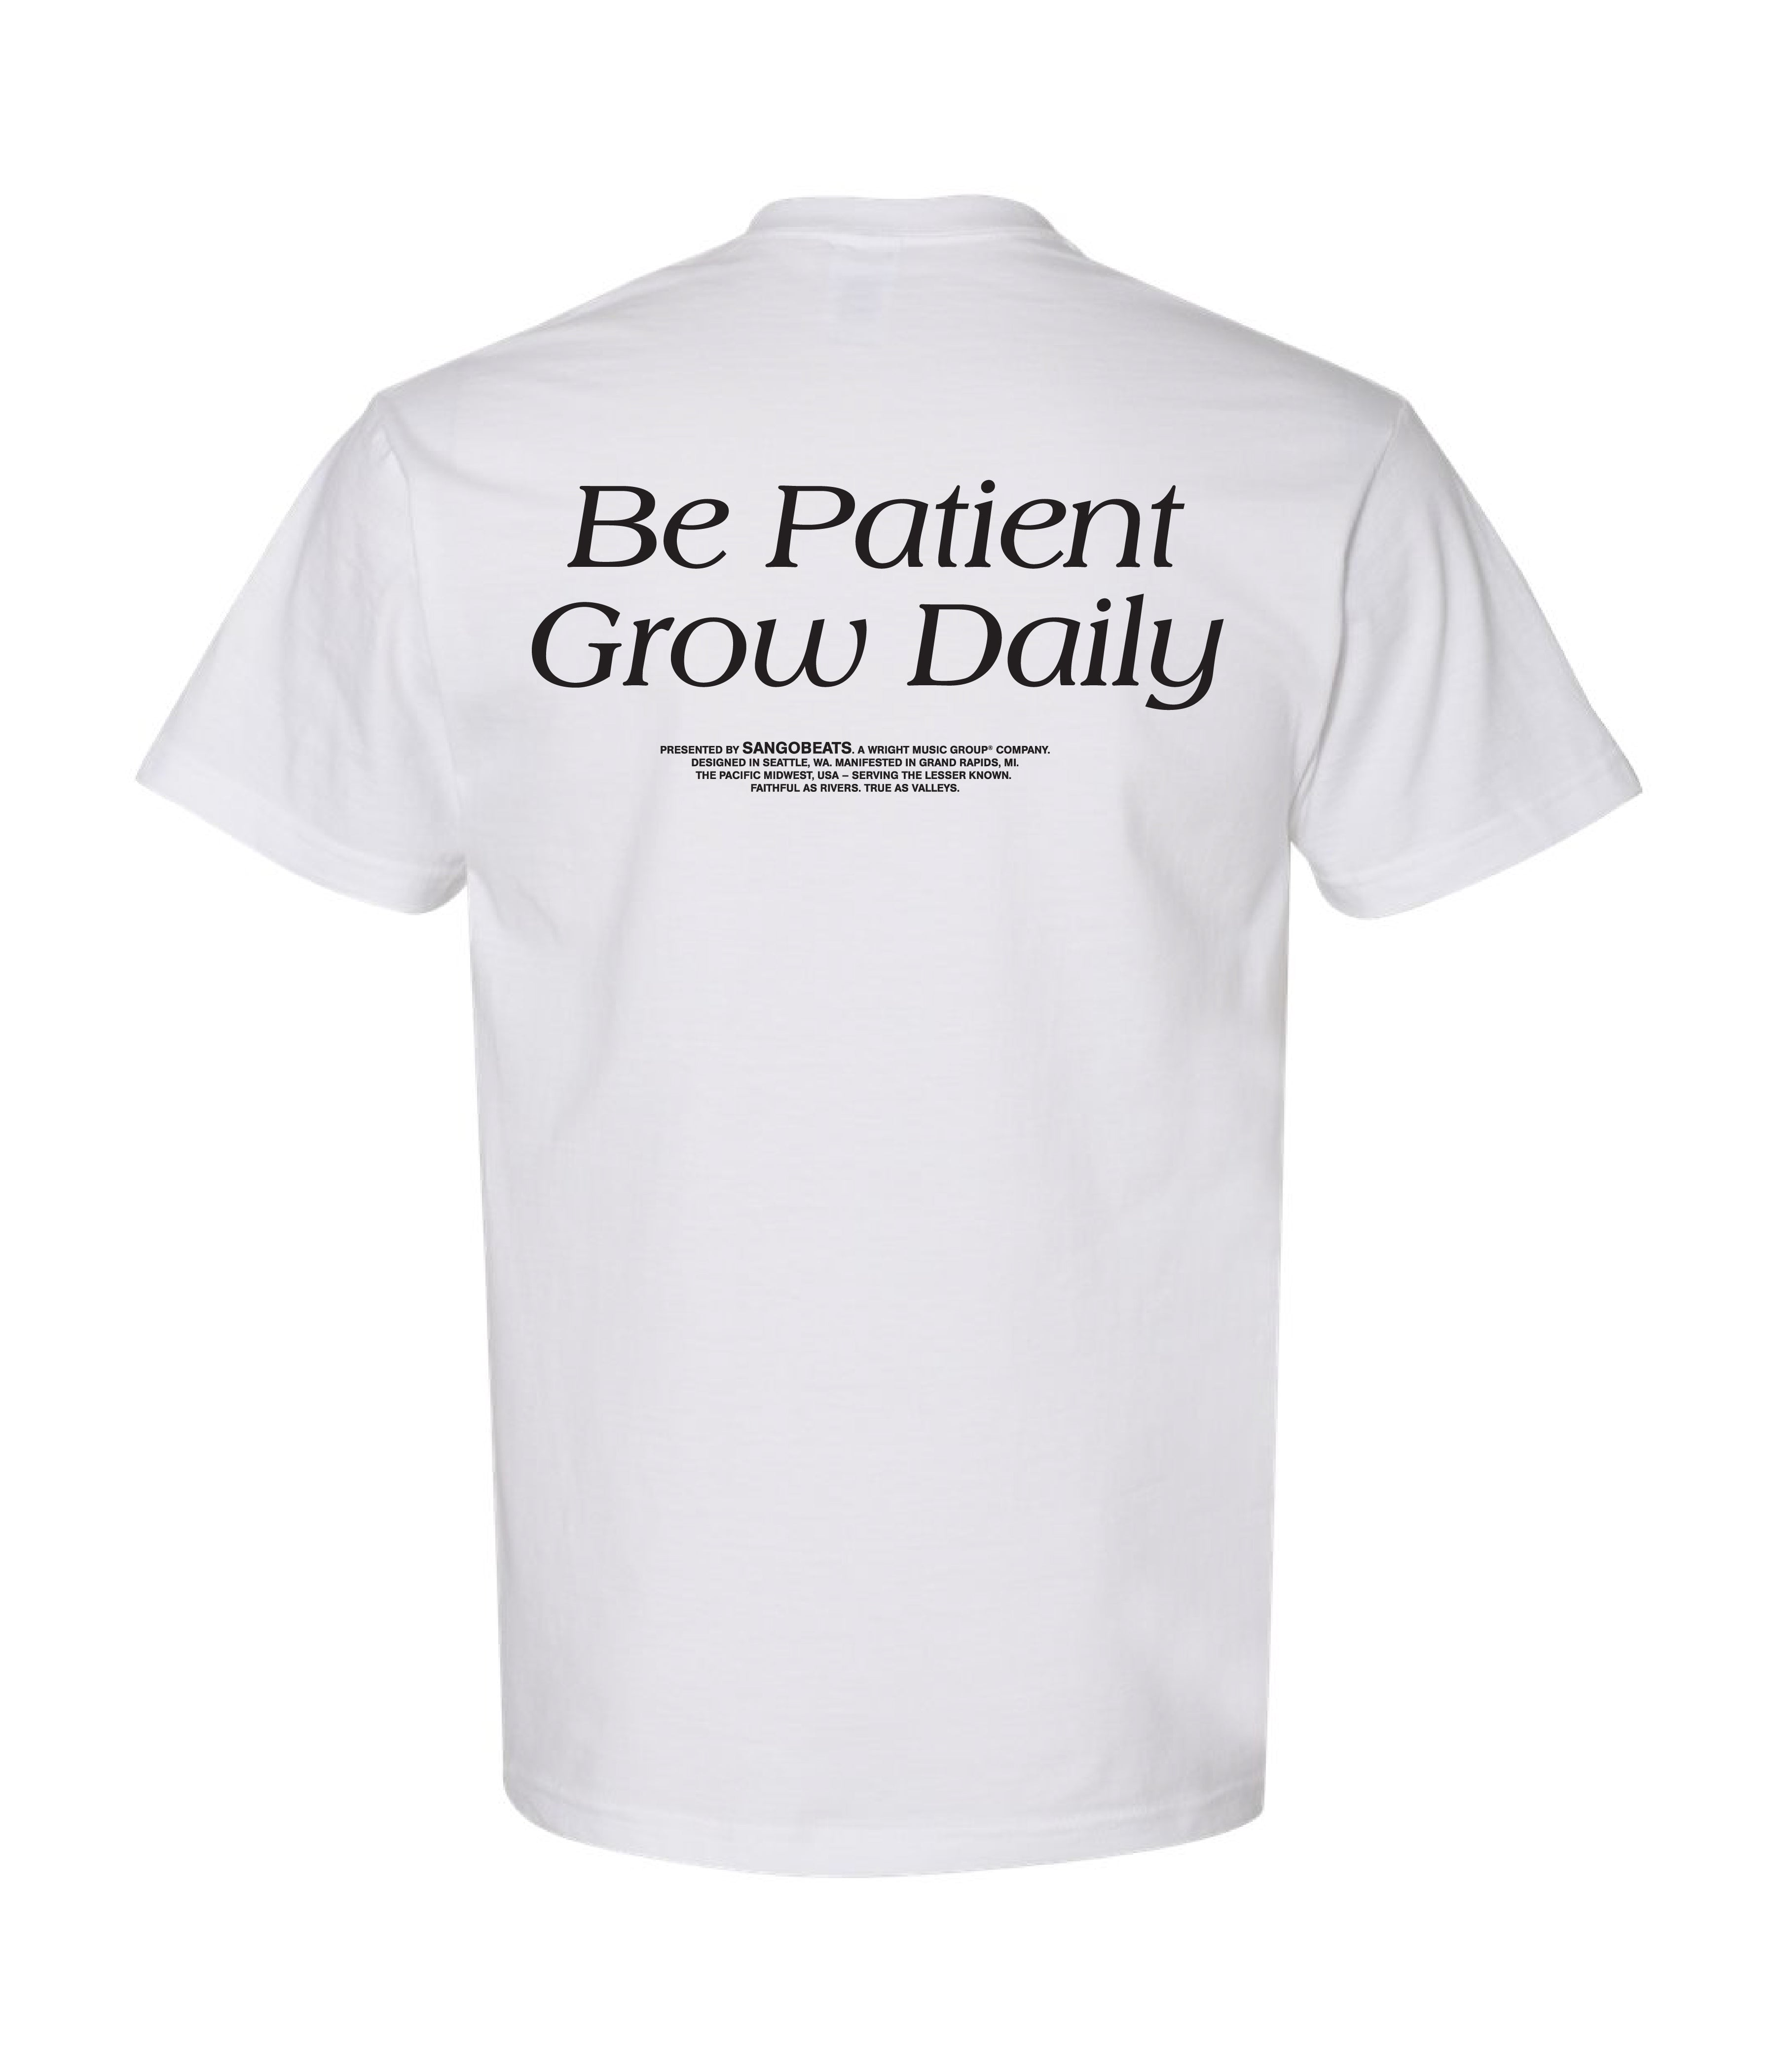 Be Patient, Grow Daily Crew Neck T-Shirt in White